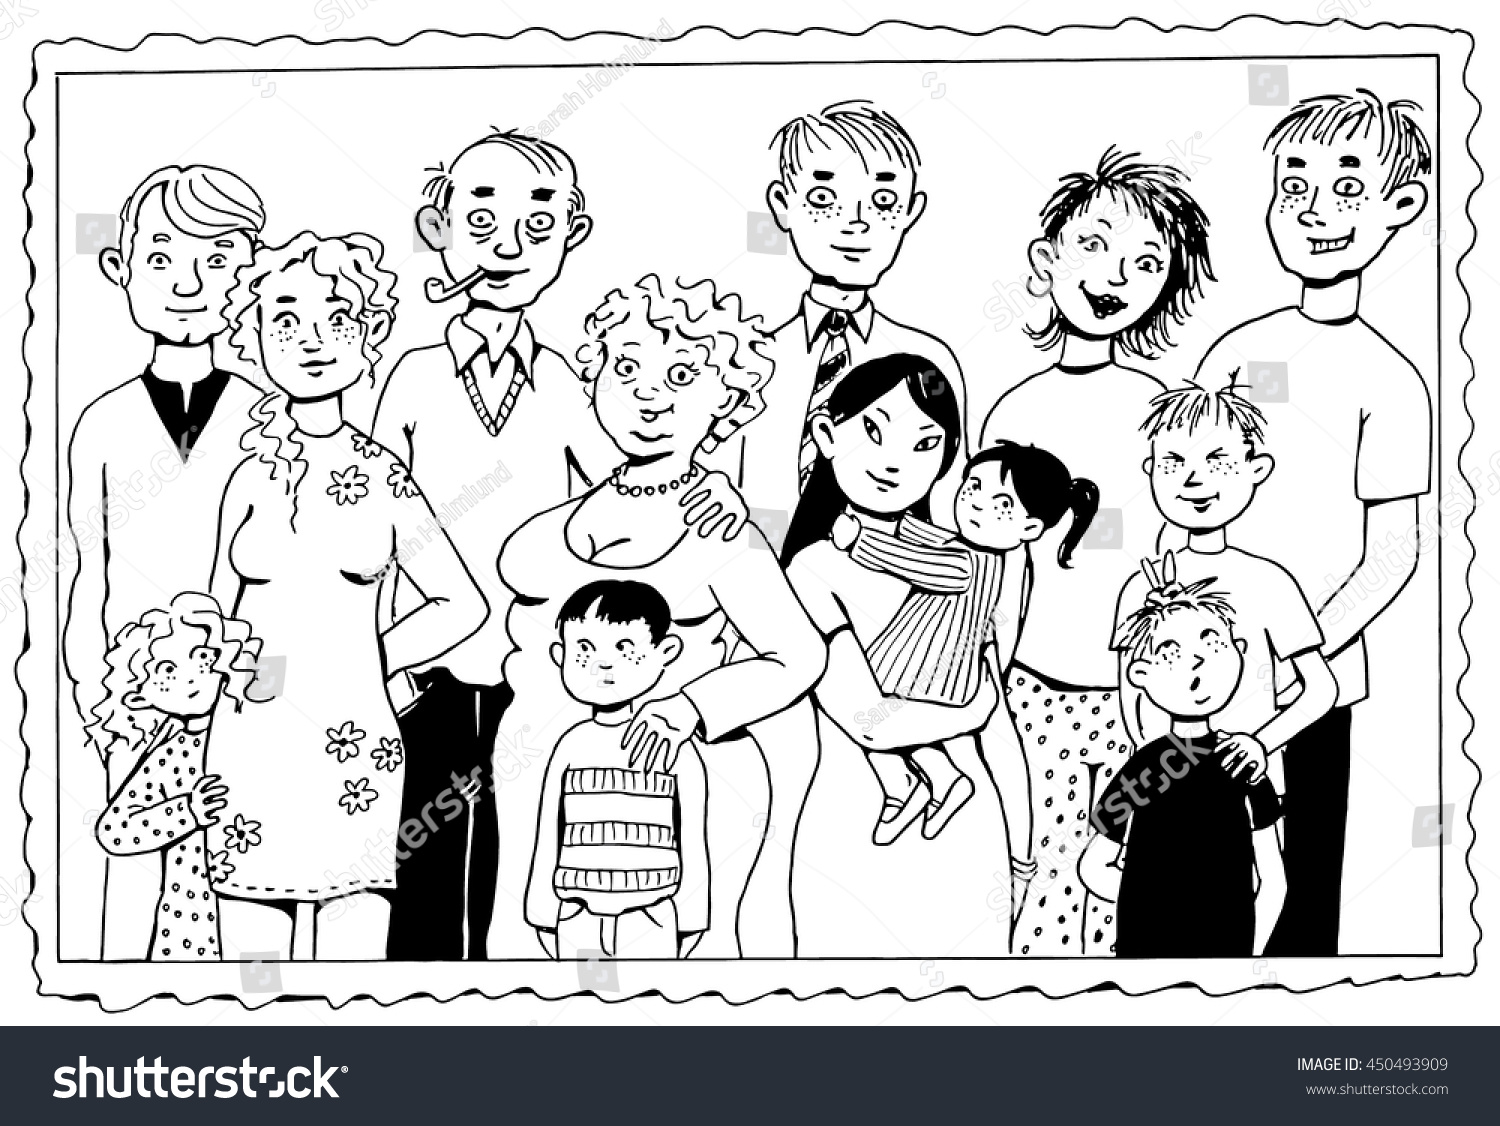 A Black And White Vector Illustration Of Family Portrait Painting